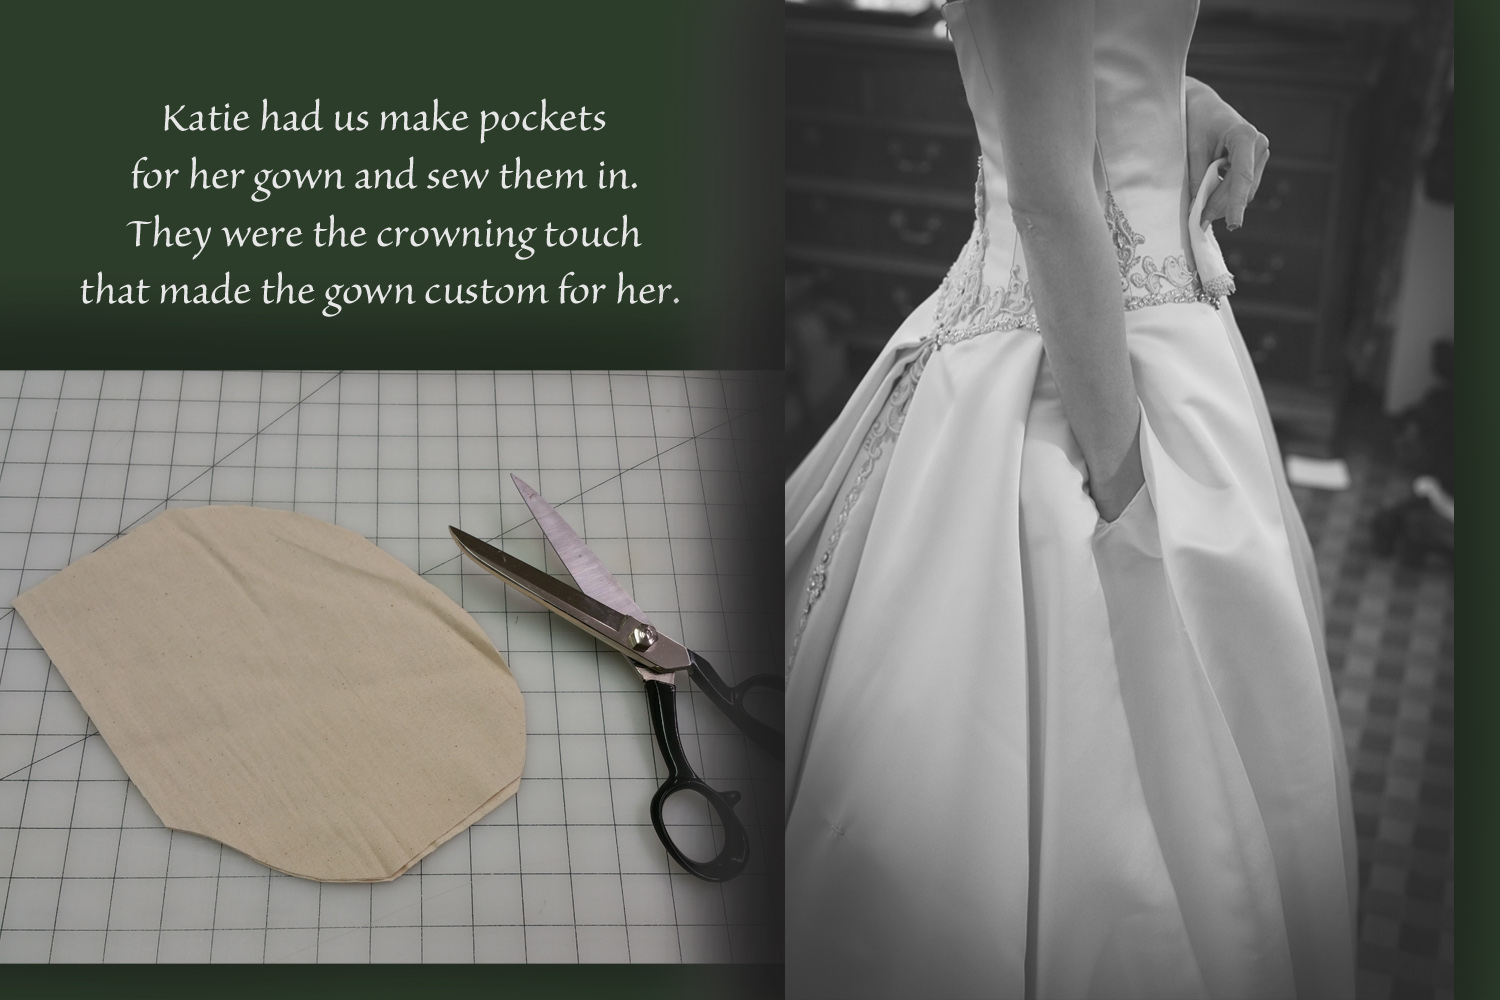 The pockets were not visible because of the lay of her pleats. You could only see them when she used them.